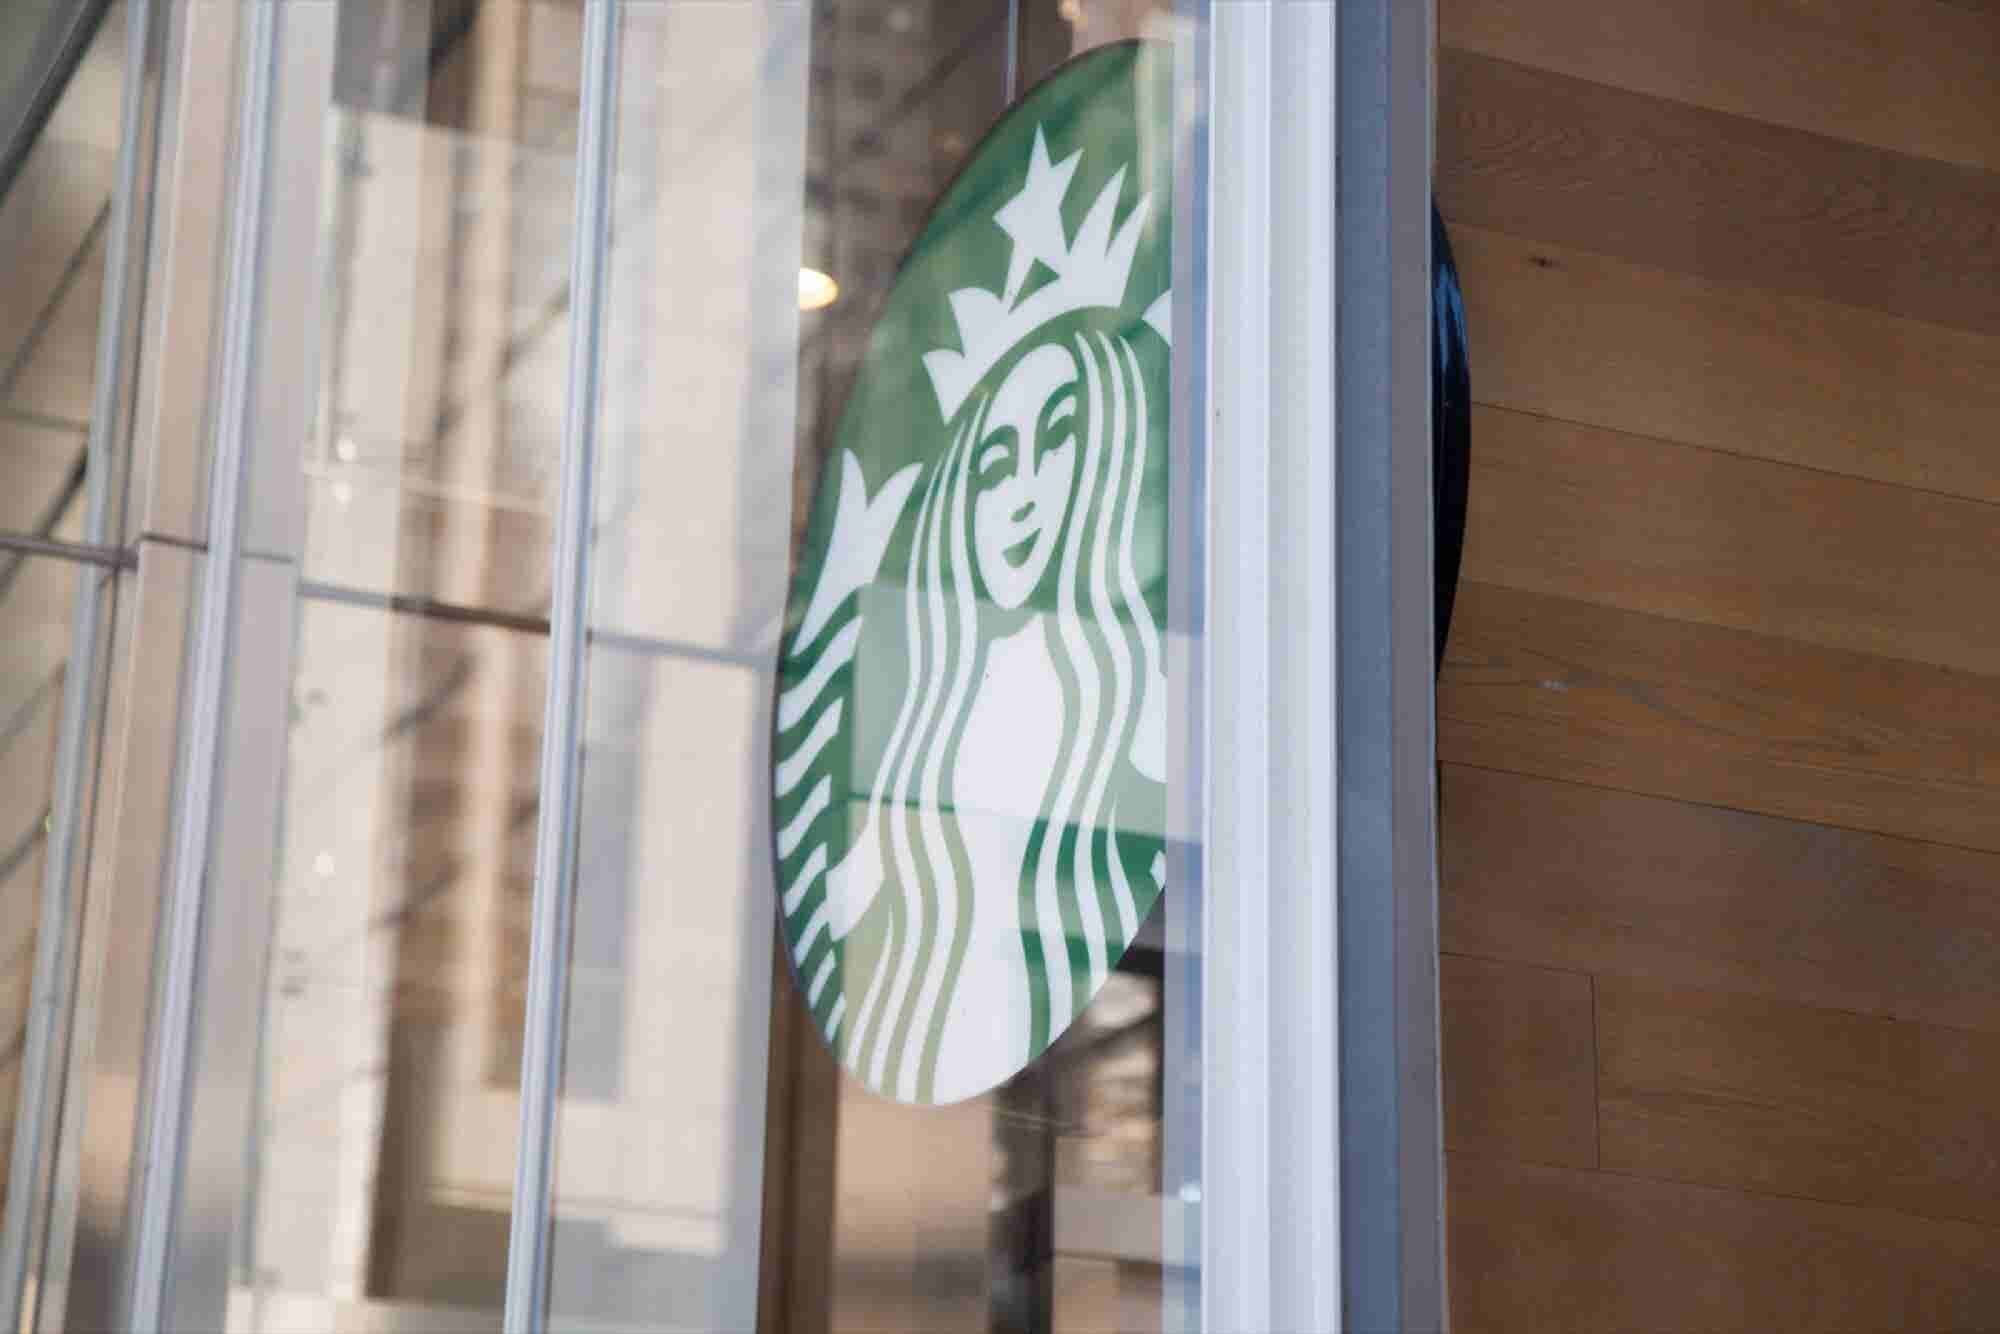 Starbucks Reports Increased Traffic and Sales Thanks to...Tea